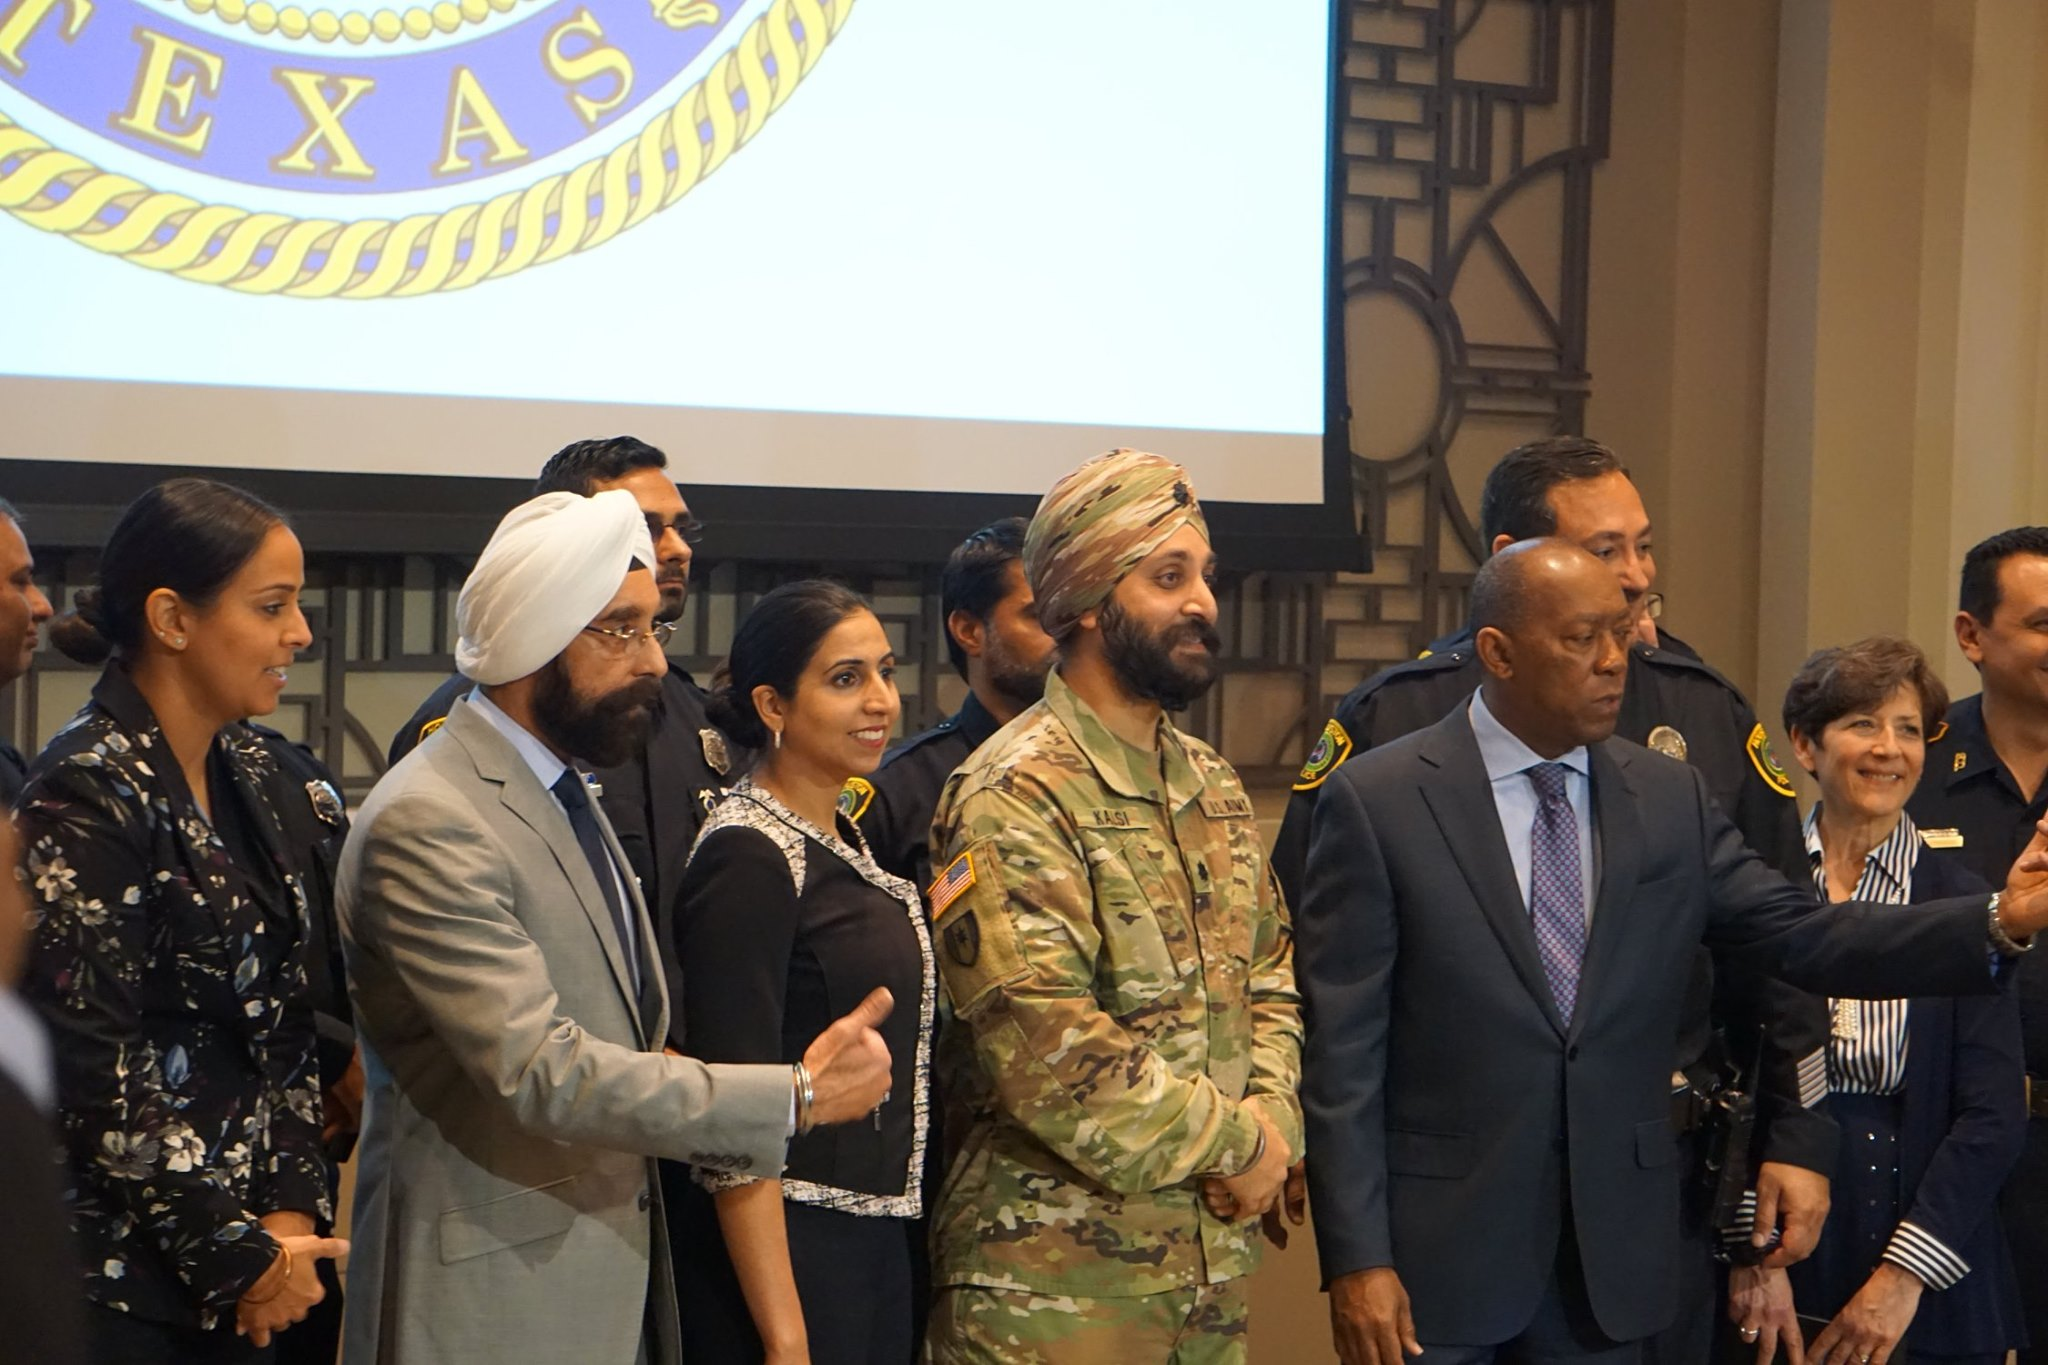 Mayor Sylvester Turner started the press conference remembering and thanking Deputy Sandeep Singh Dhaliwal, a Sikh-American police officer who was shot while conducting a traffic stop earlier in the year.